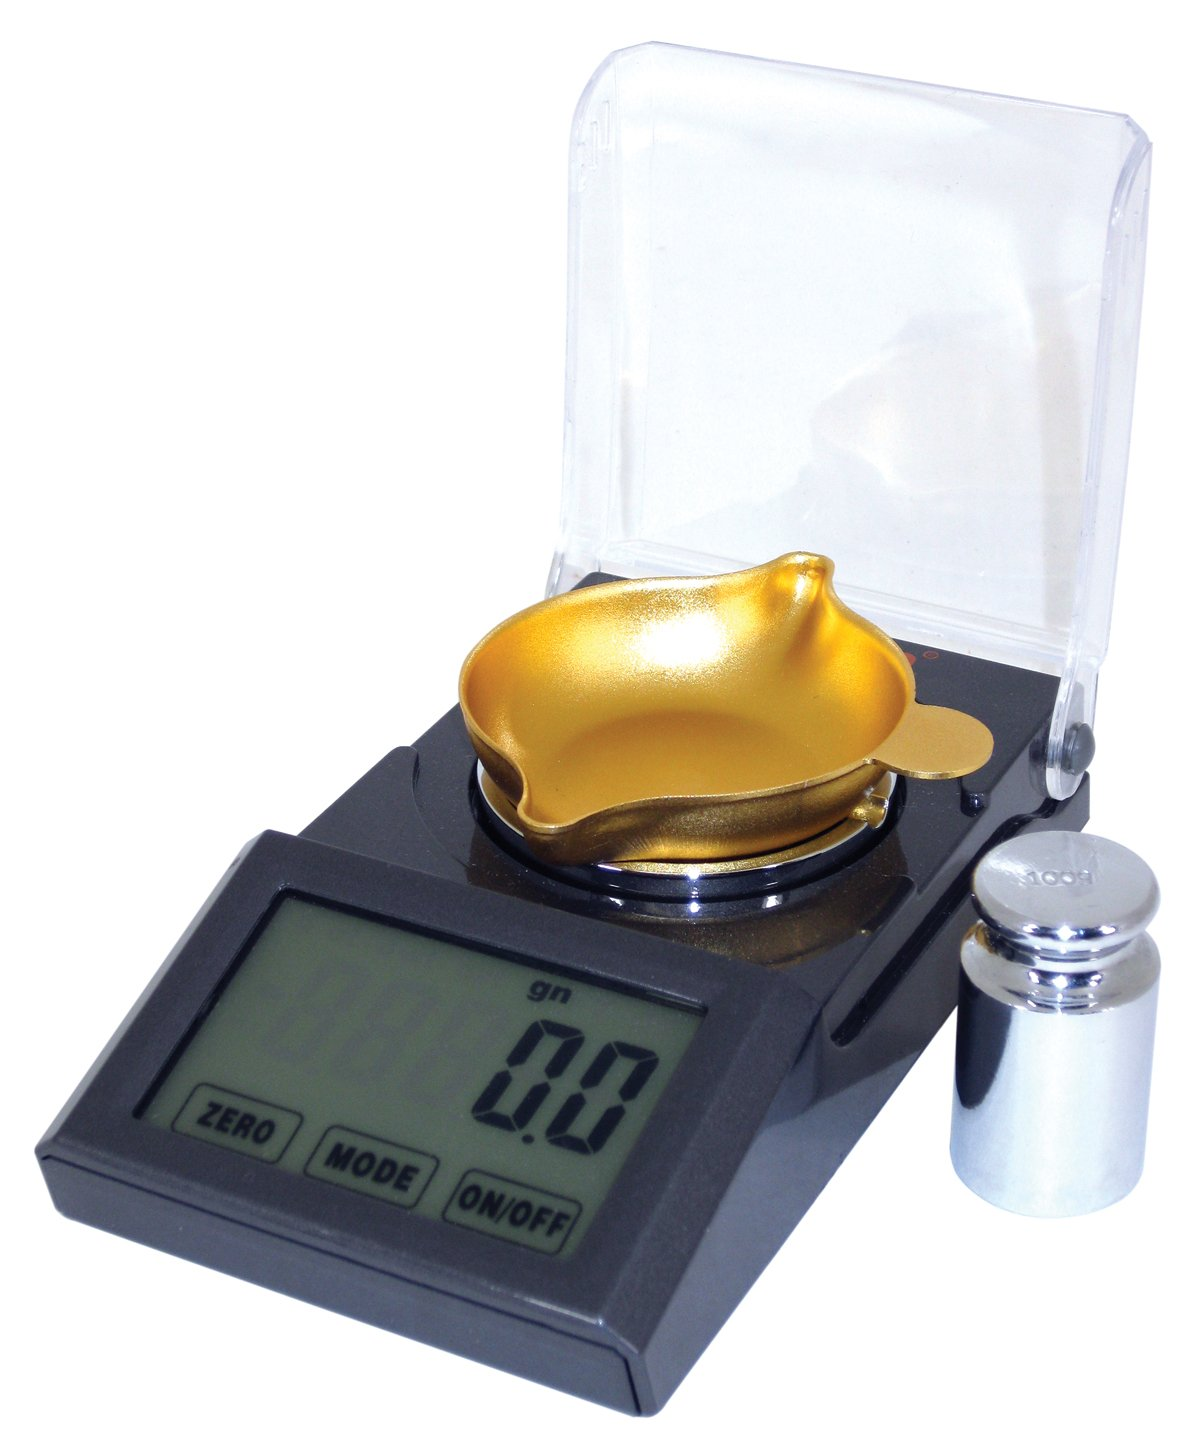 Lyman Micro-Touch 1500 Electronic Scale 110V 7750700 by Lyman